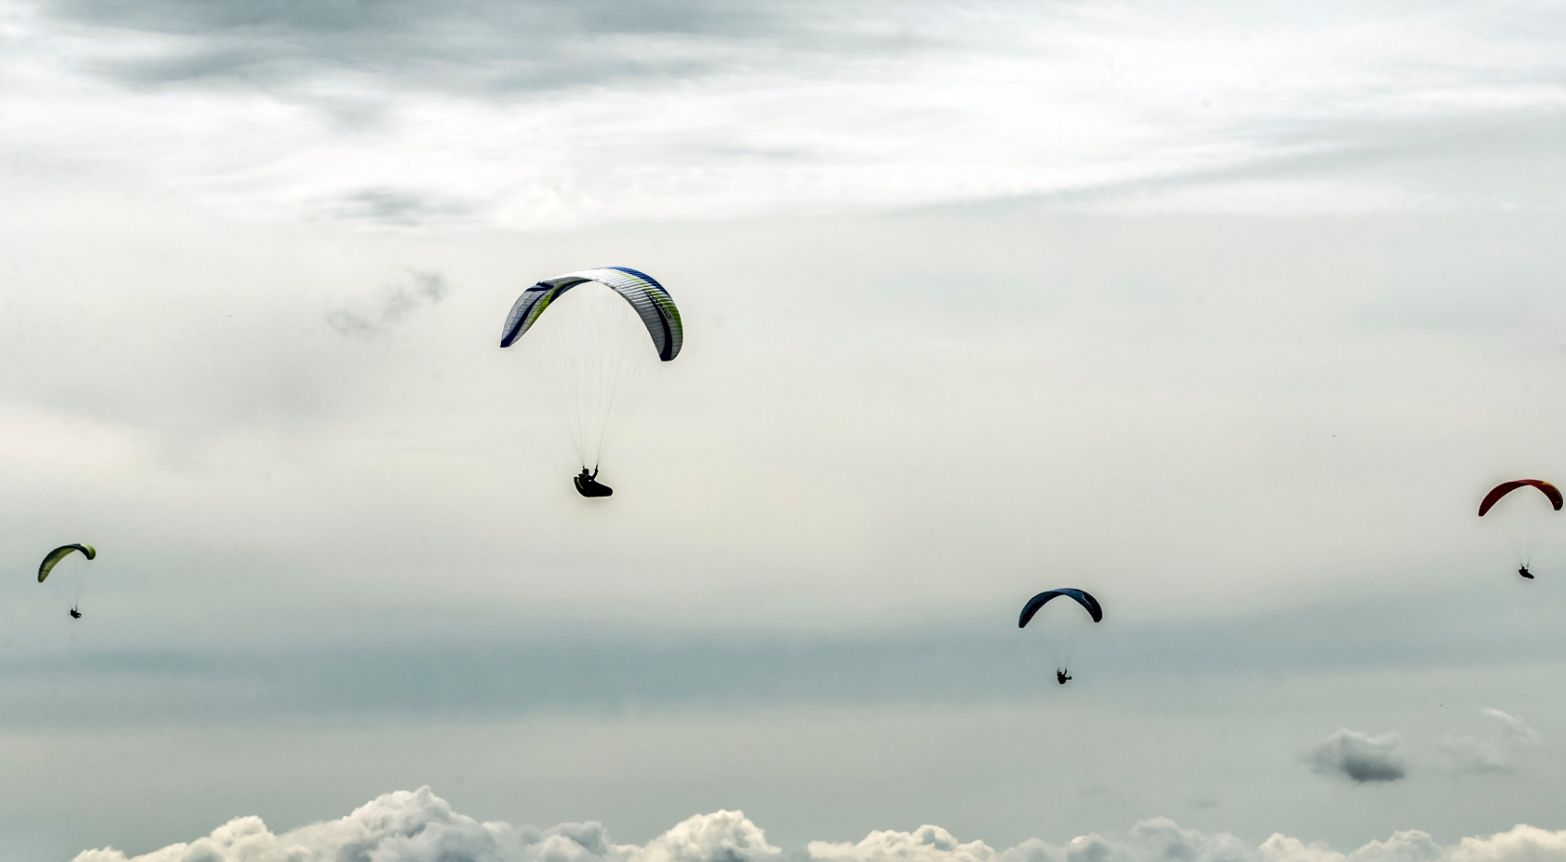 British Paraglider Dies After Mid-Air Collision With Another Pilot During